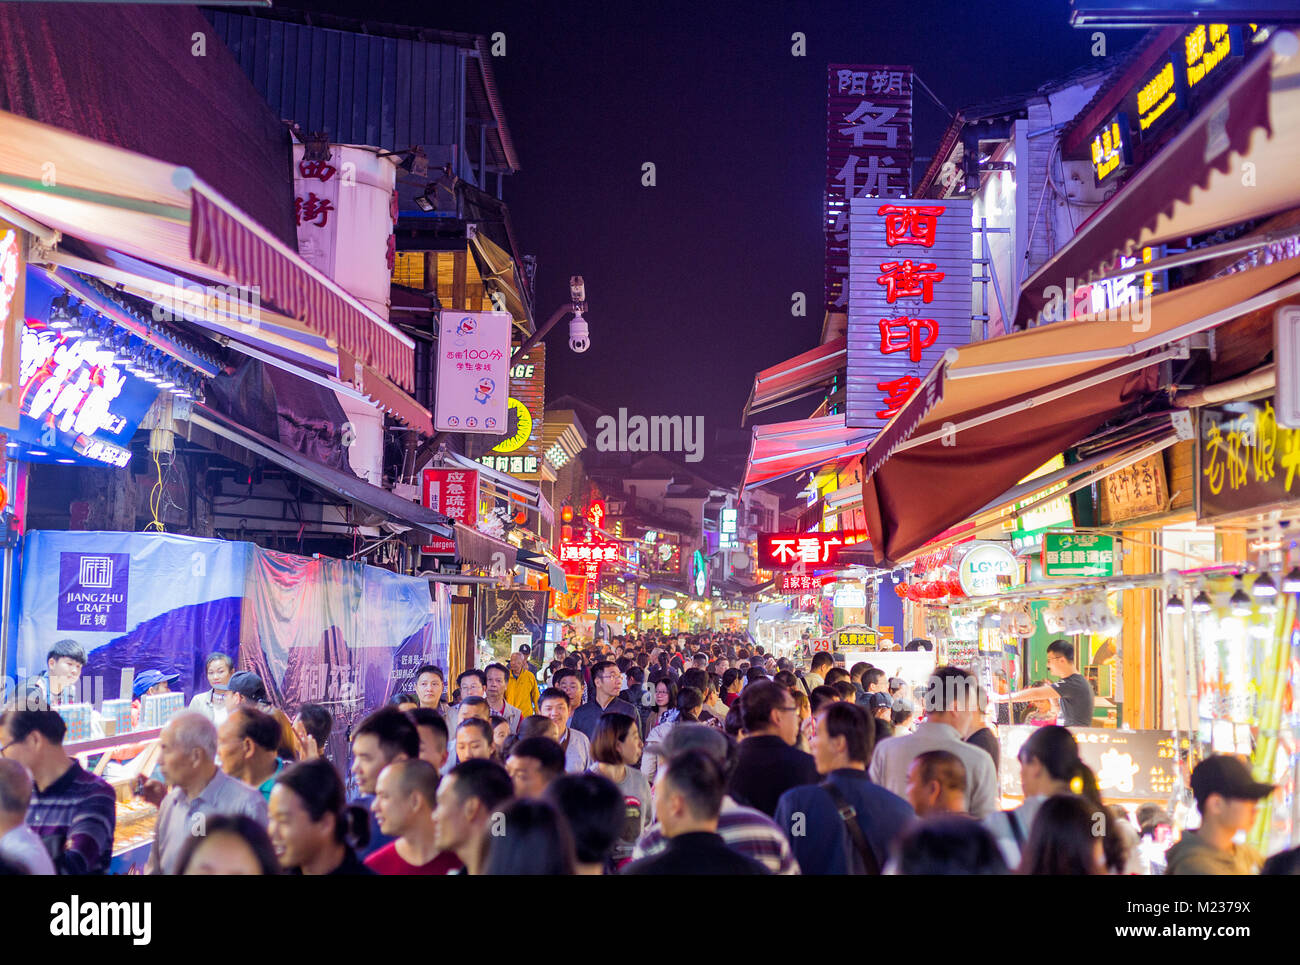 YANGSHOU CHINA - NOVEMBER 9, 20167: West street is a main commercial street with restaurants bars and gift shops. Stock Photo